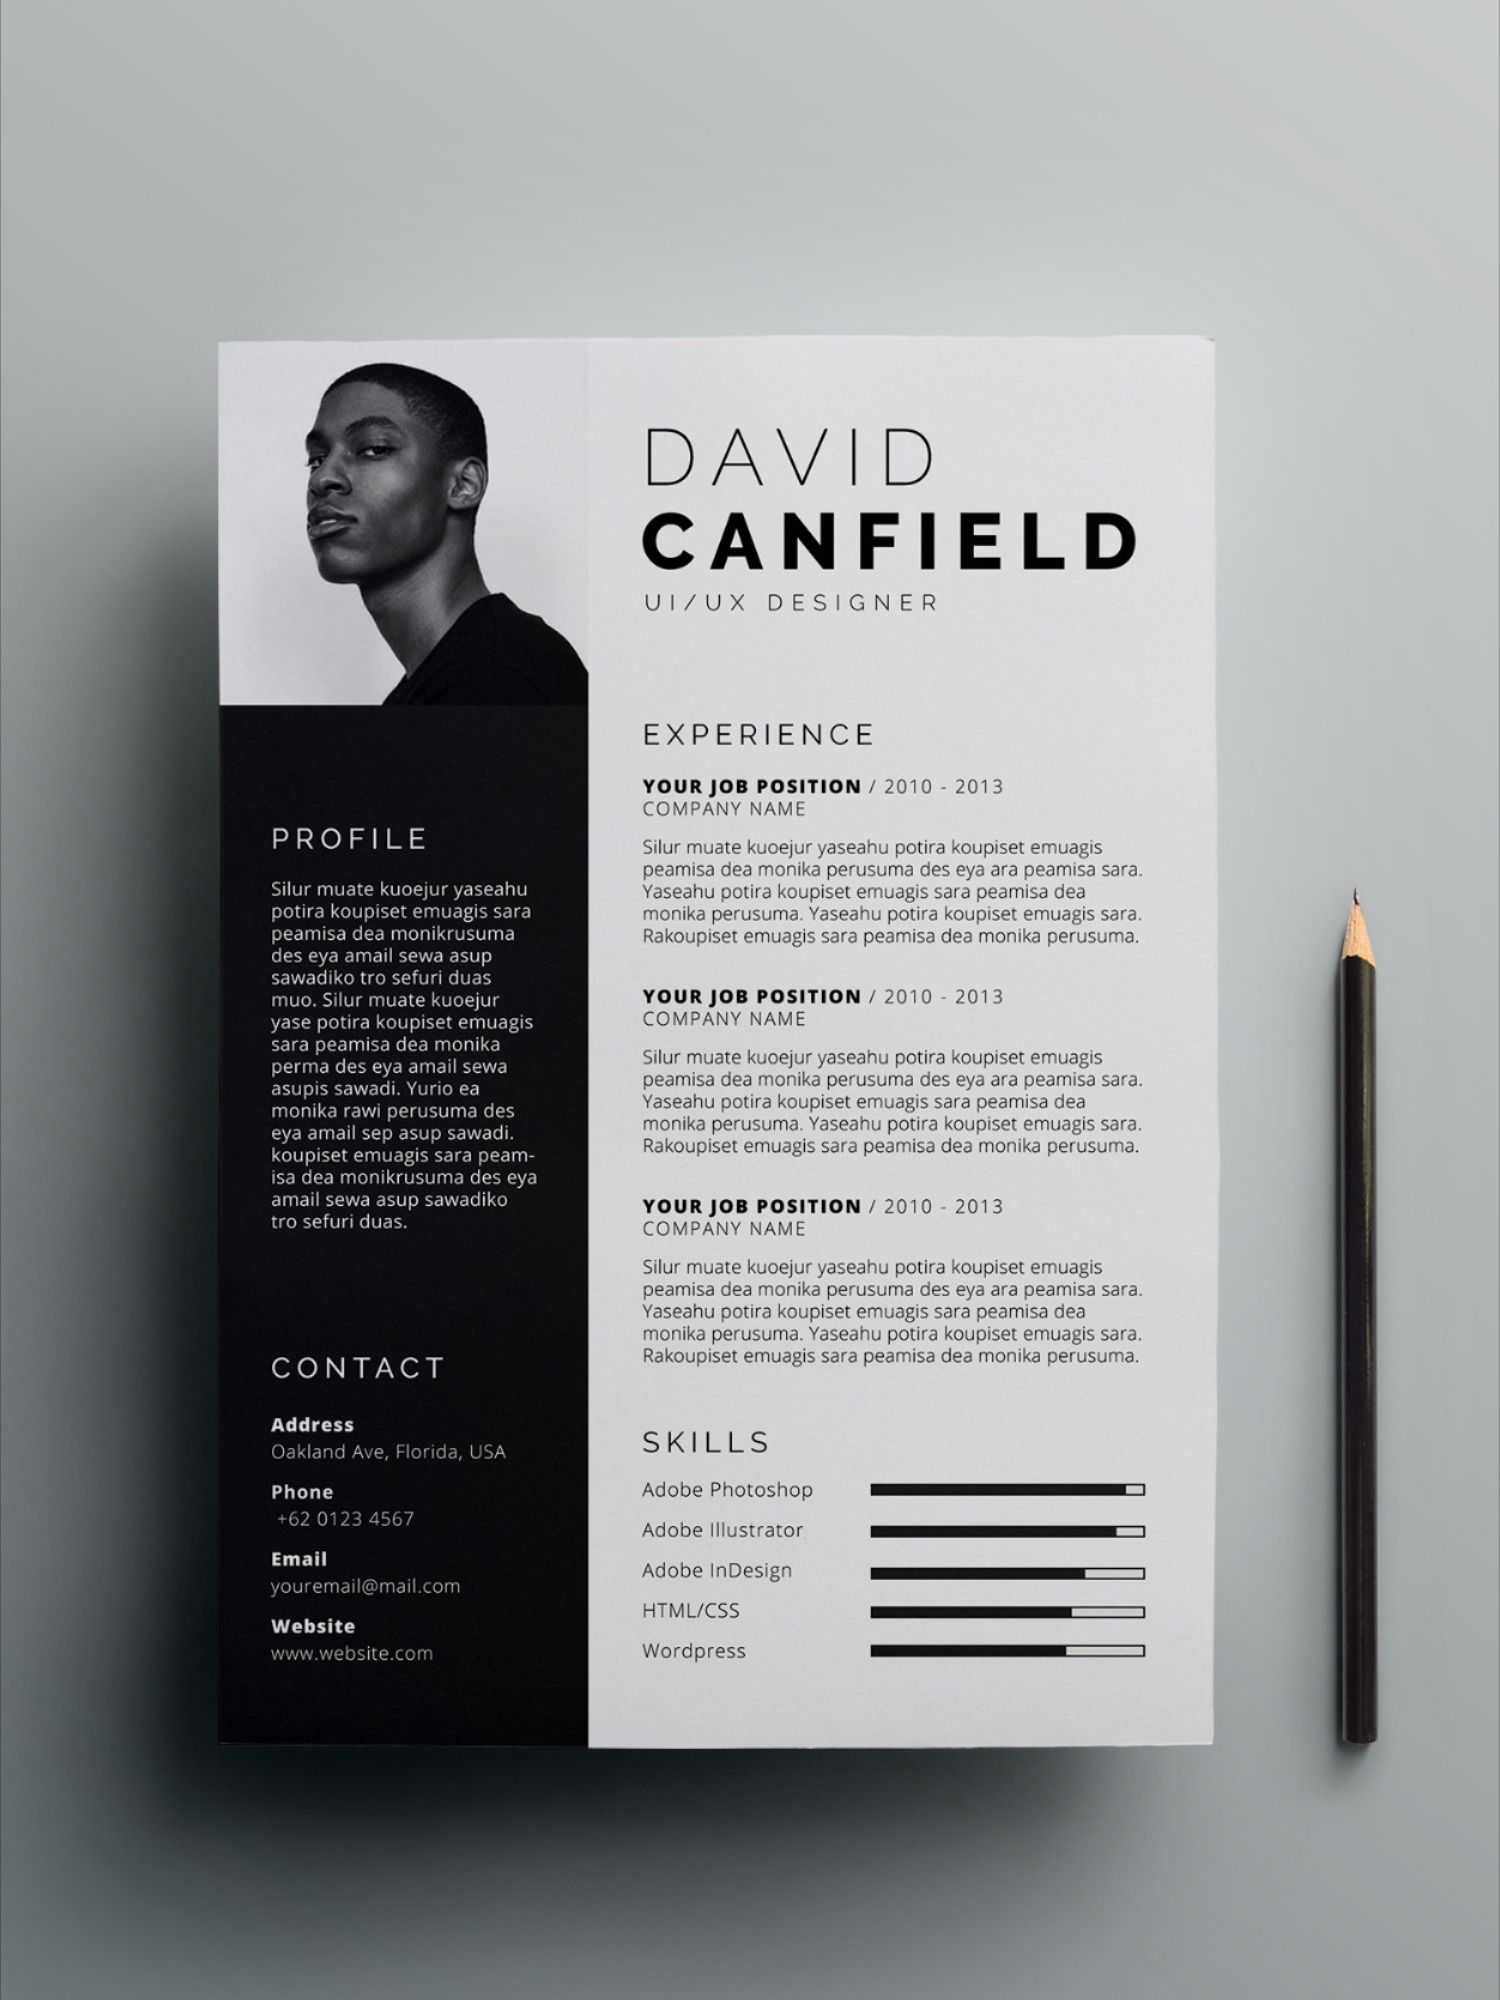 Professional Resume Template For Microsoft Word With Cover Letter Resume Template With Photo Executive Resume Template Cv Template Desain Cv Cv Kreatif Desain Grafis